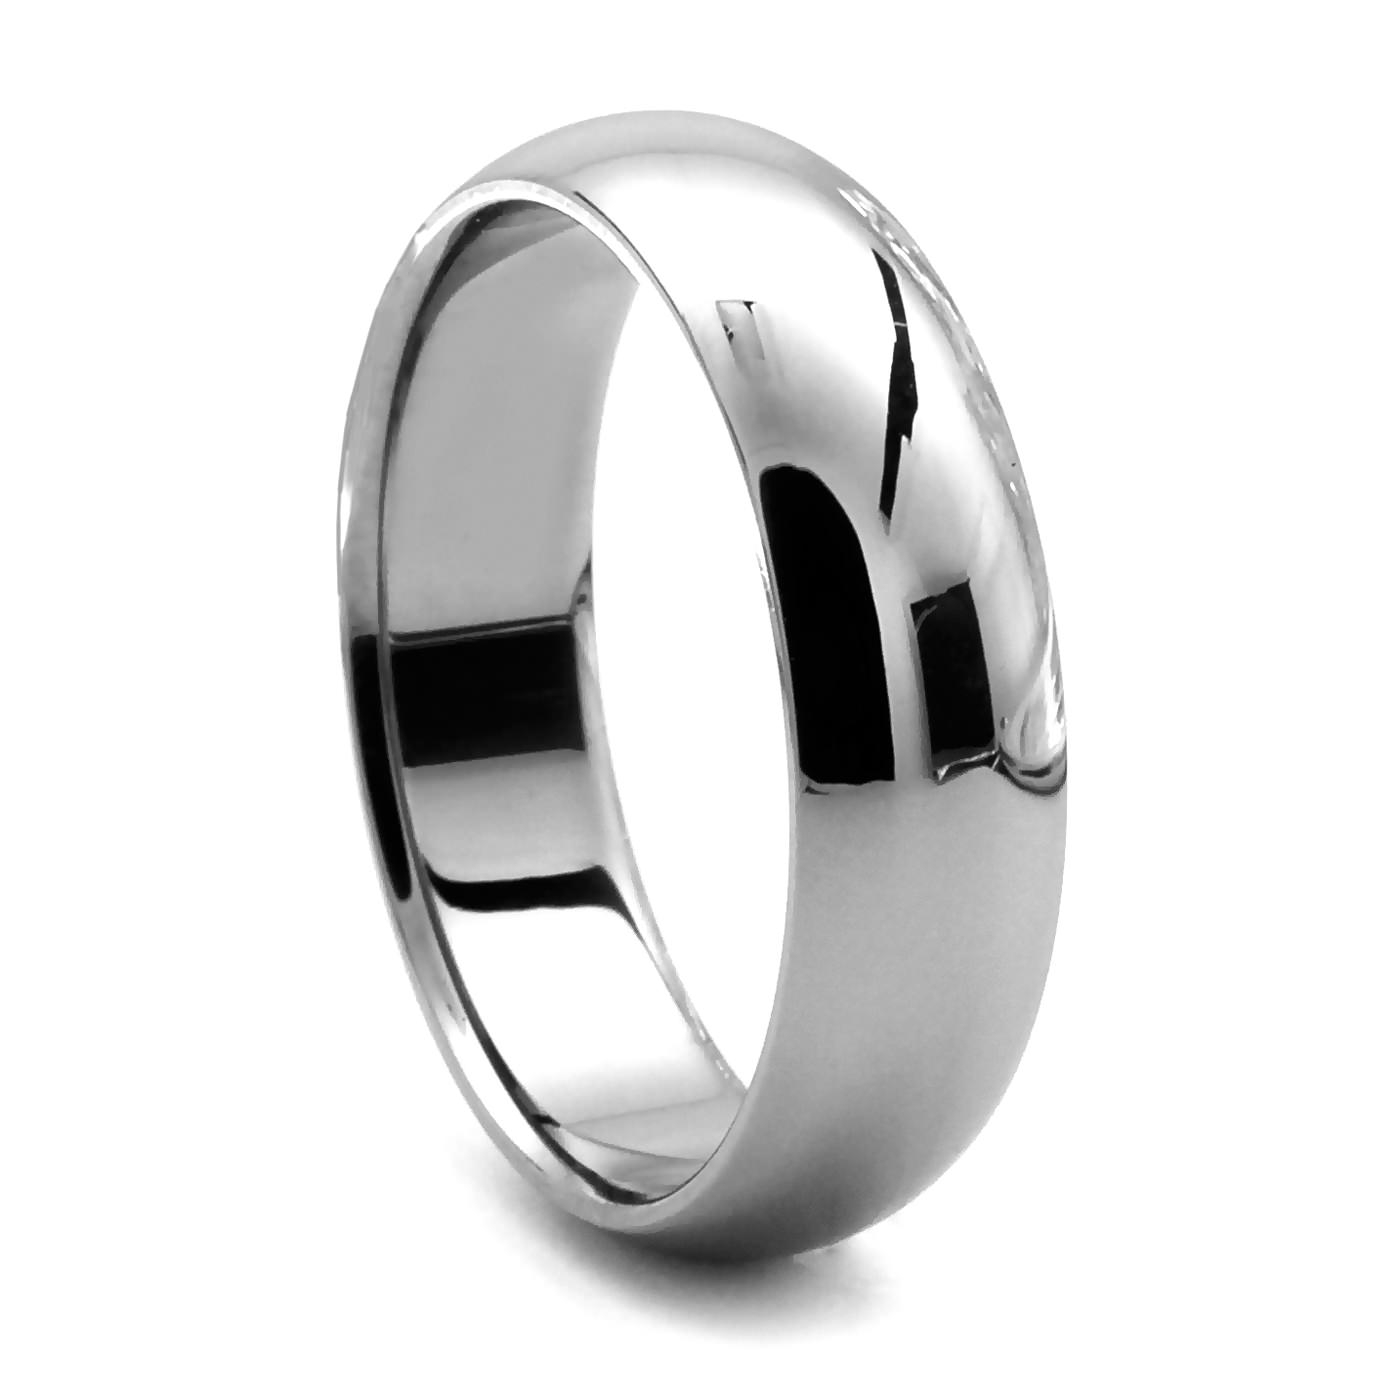 J.r. Yates Classico Comfort Fit Tungsten Wedding Band Pertaining To Recent Tungsten Wedding Bands (Gallery 3 of 15)